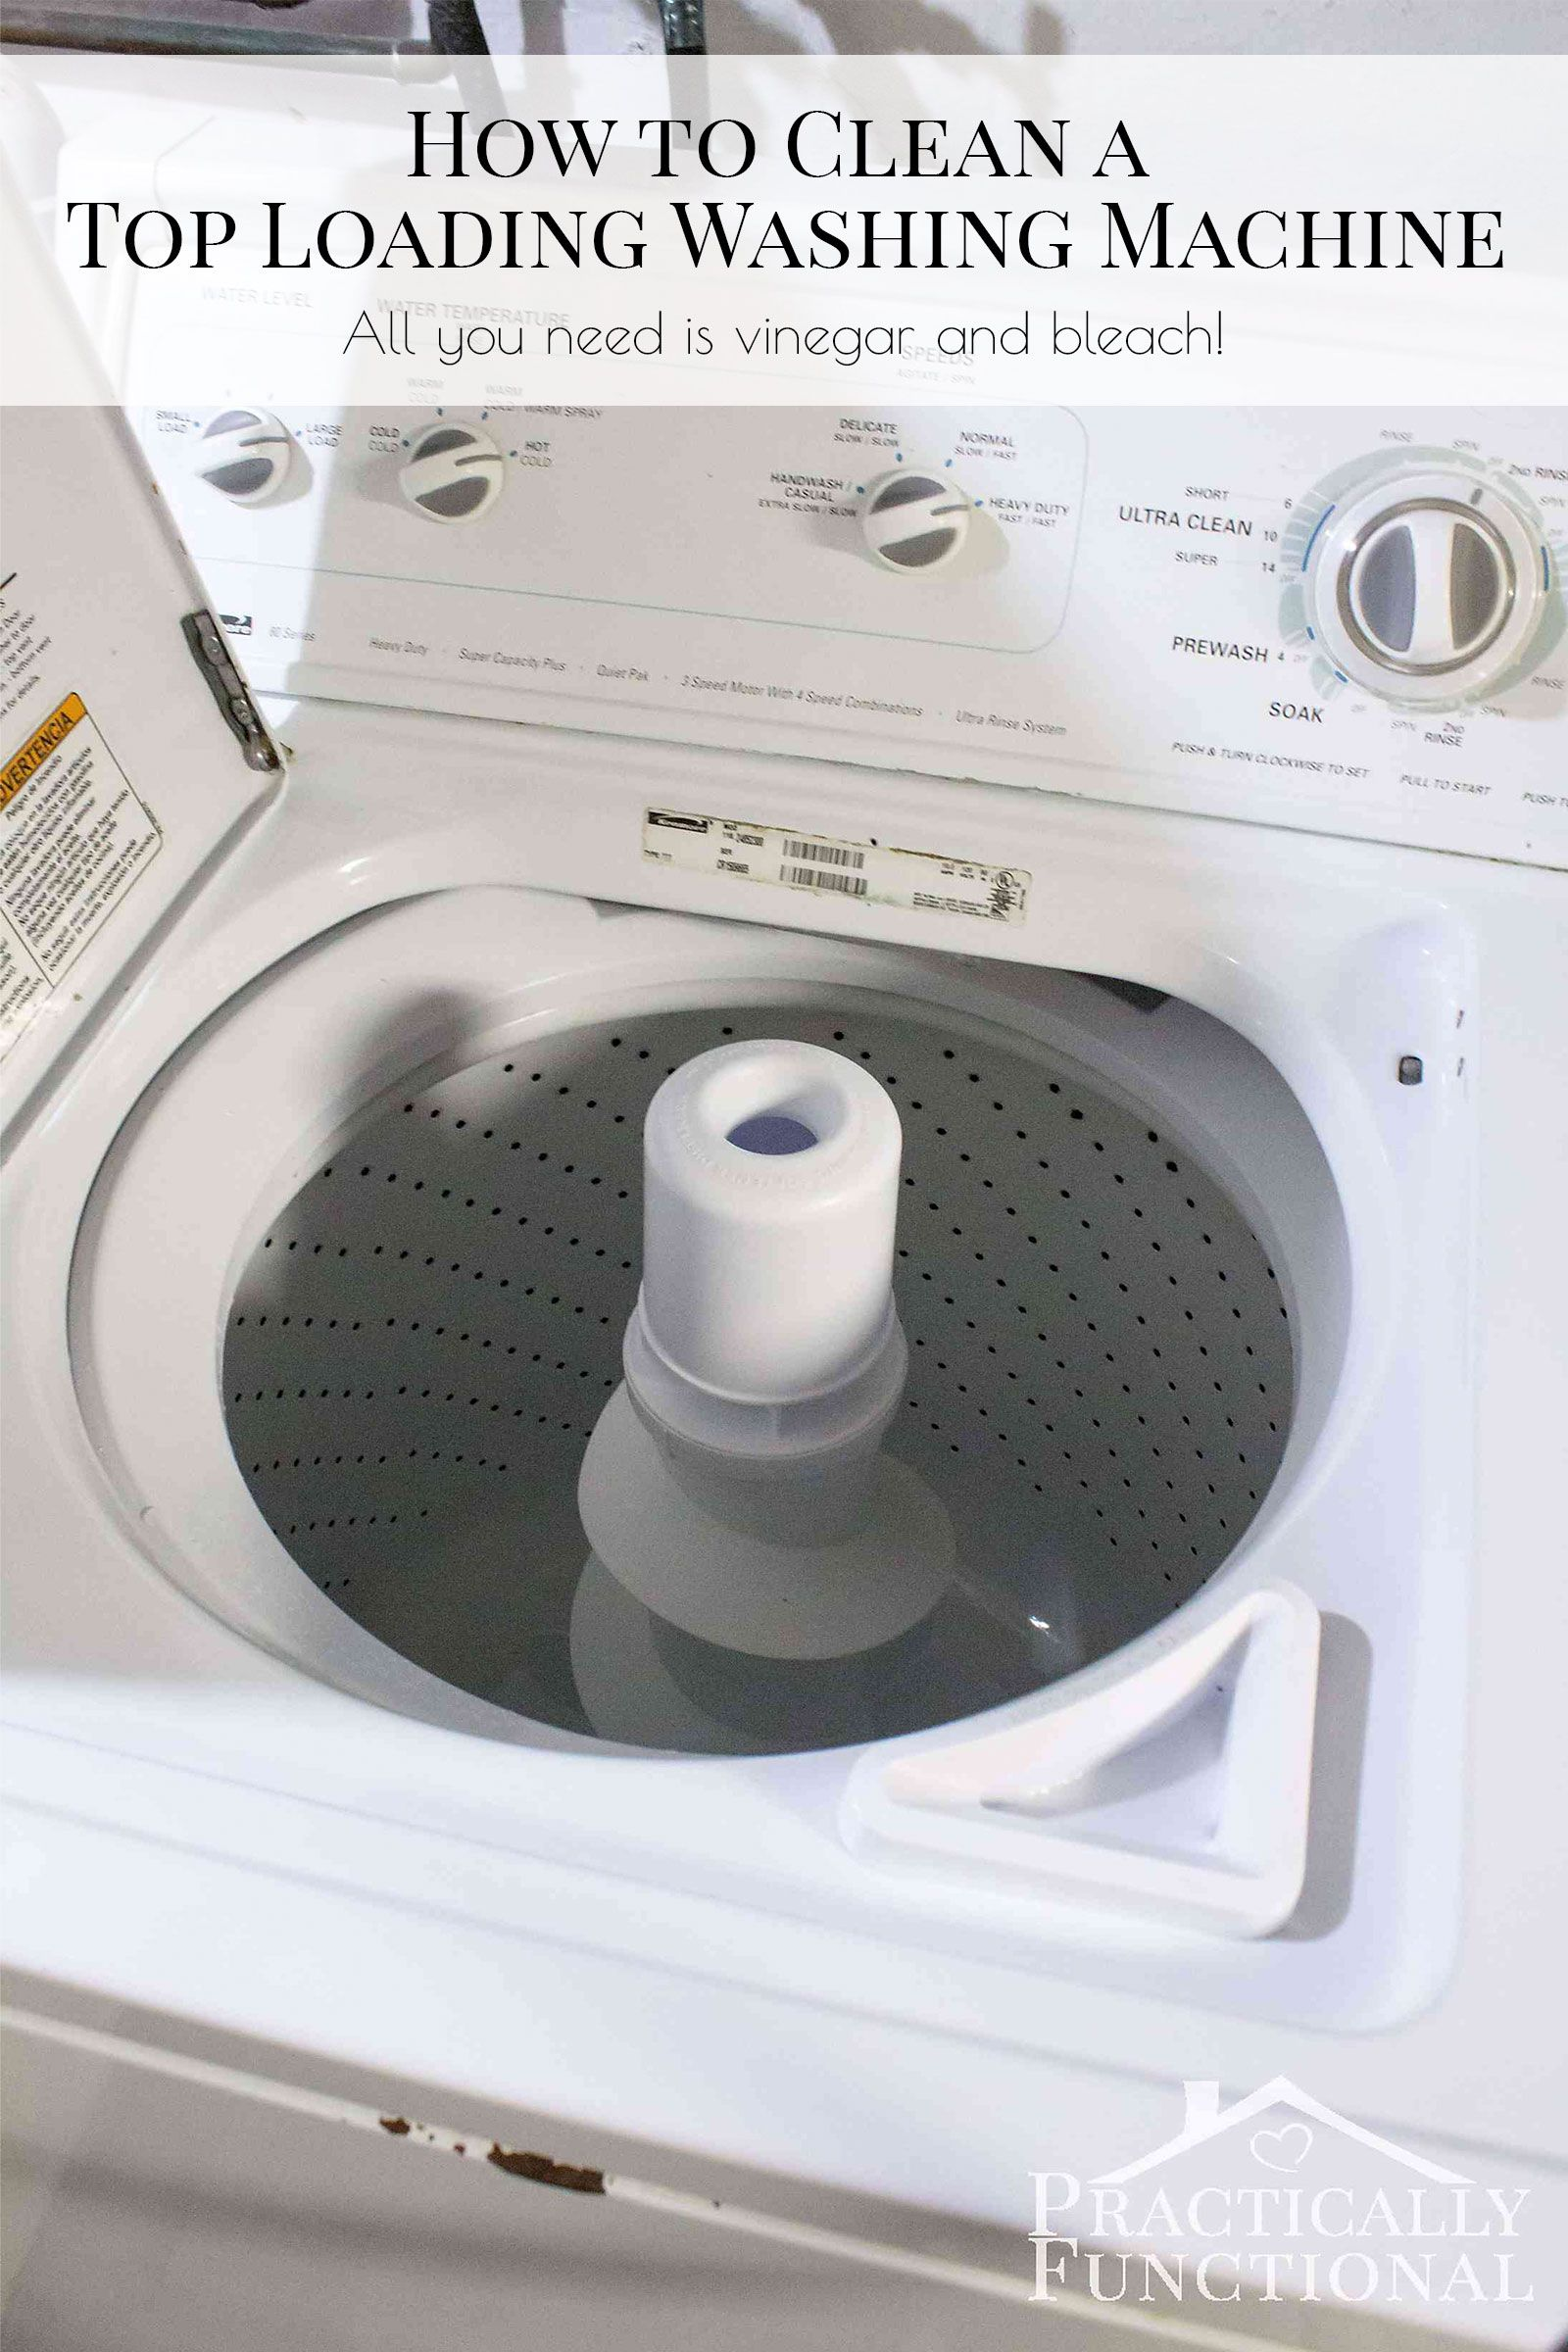 How To Clean A Washing Machine With Vinegar And Bleach Step By Instructions That Really Work